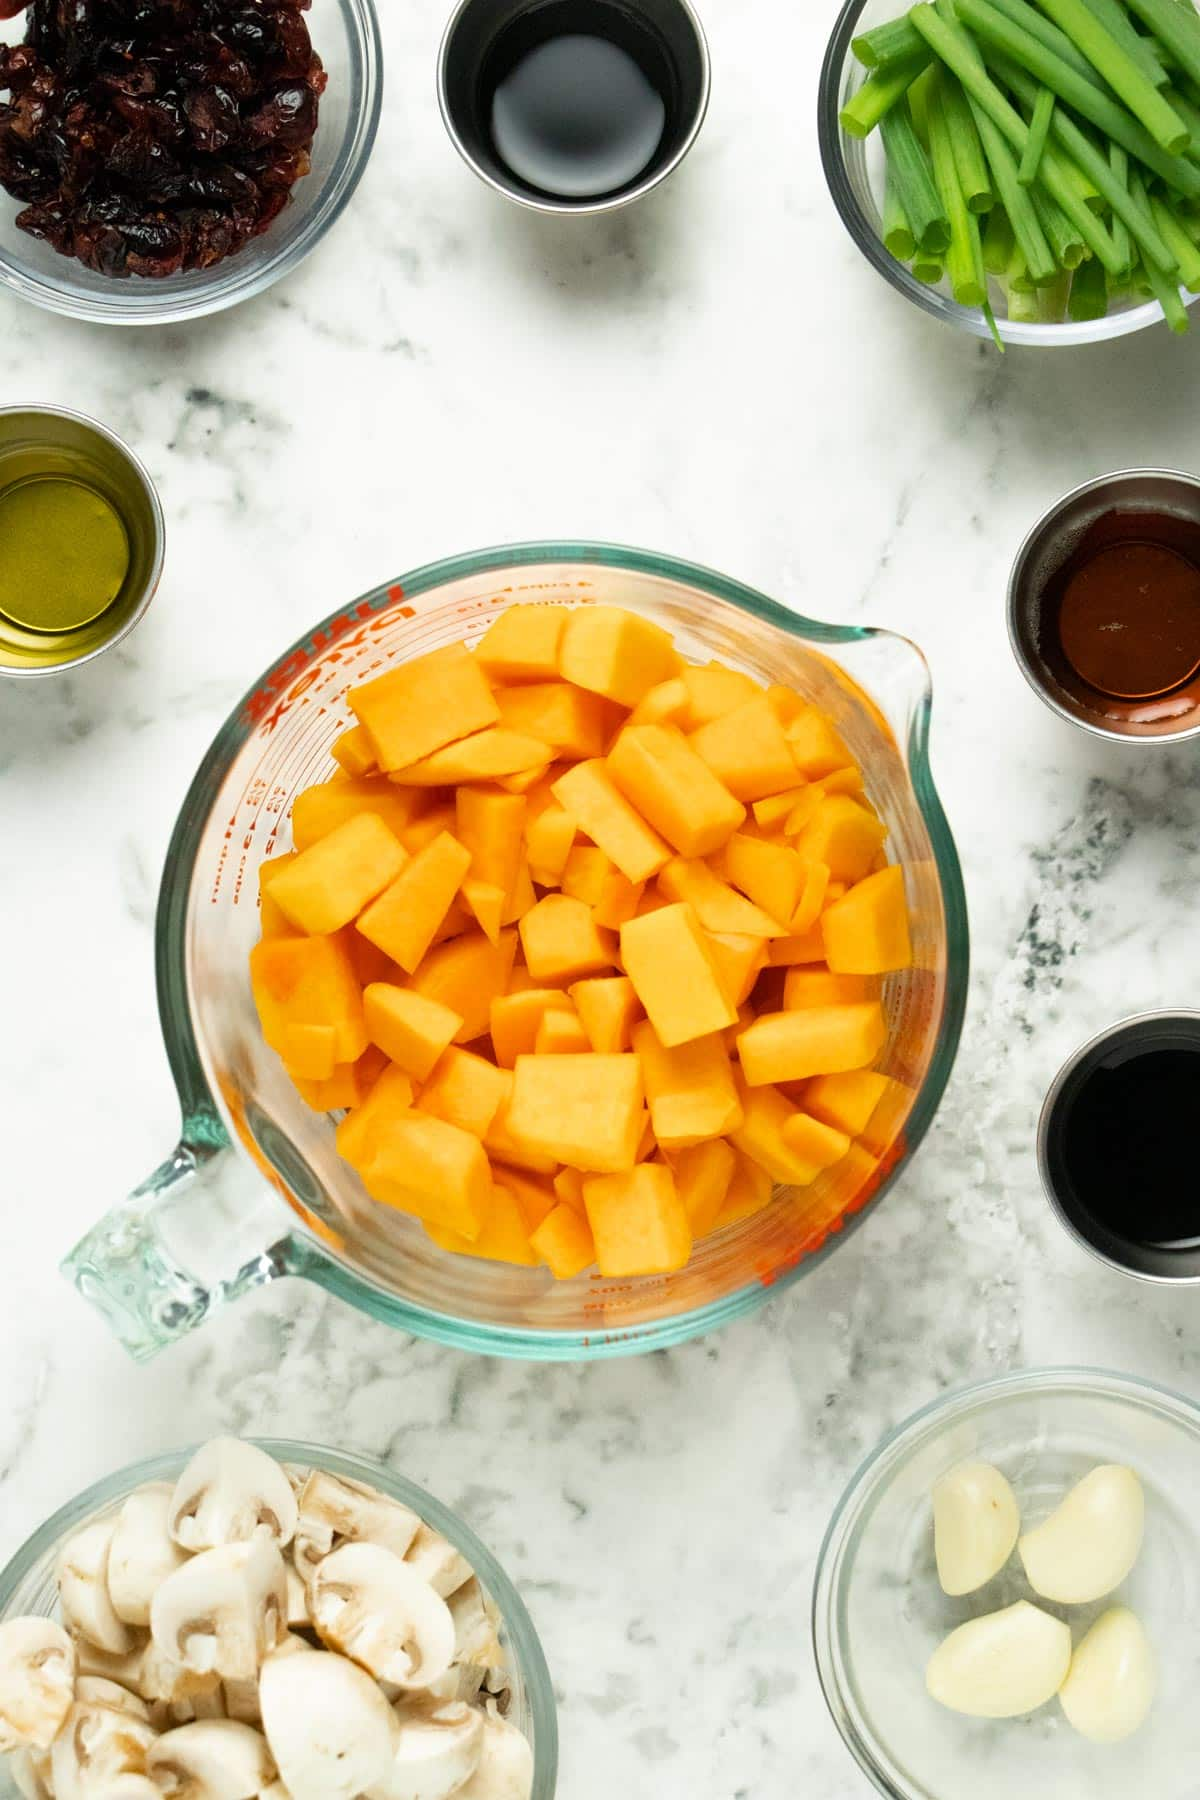 diced butternut squash in a glass mixing bowl surrounded by bowls of other ingredients